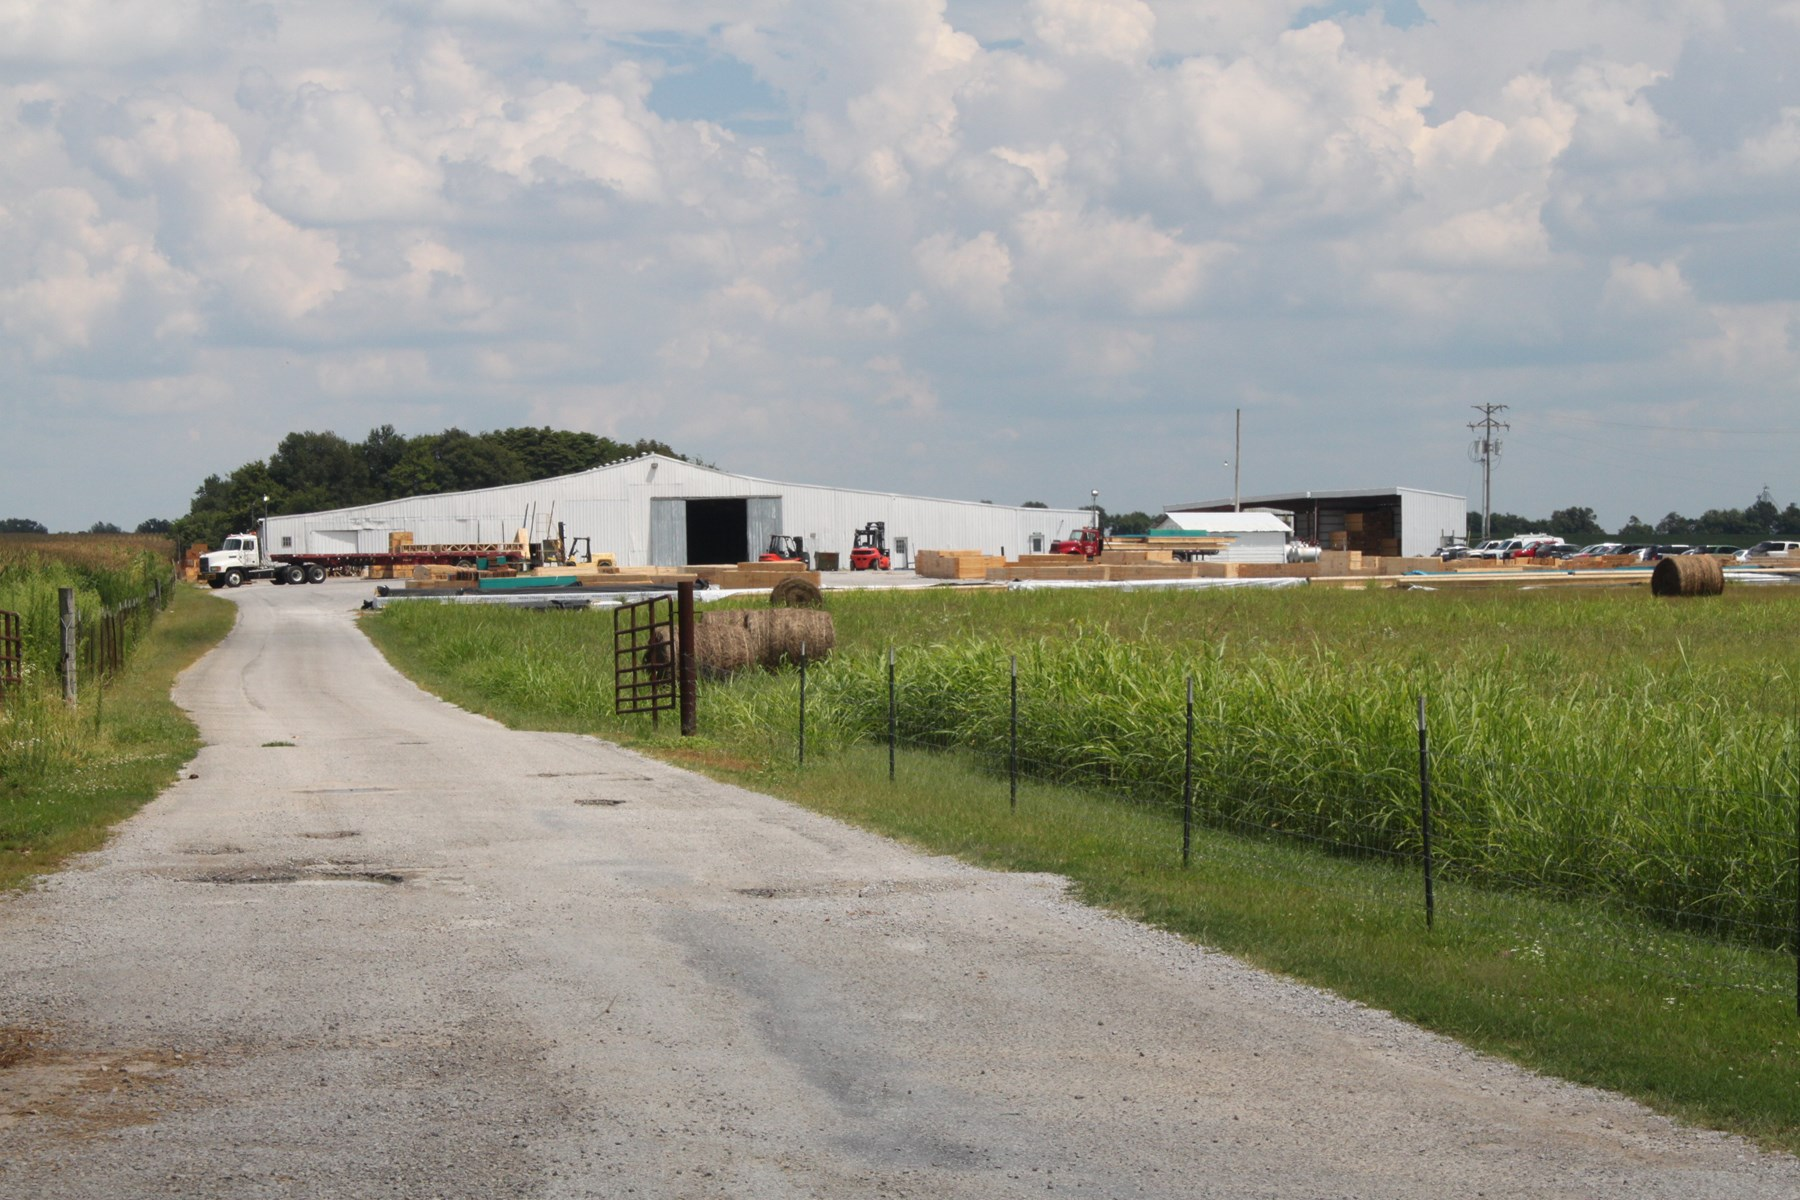 Commercial-Industrial Building and 13 Acres For Sale in KY